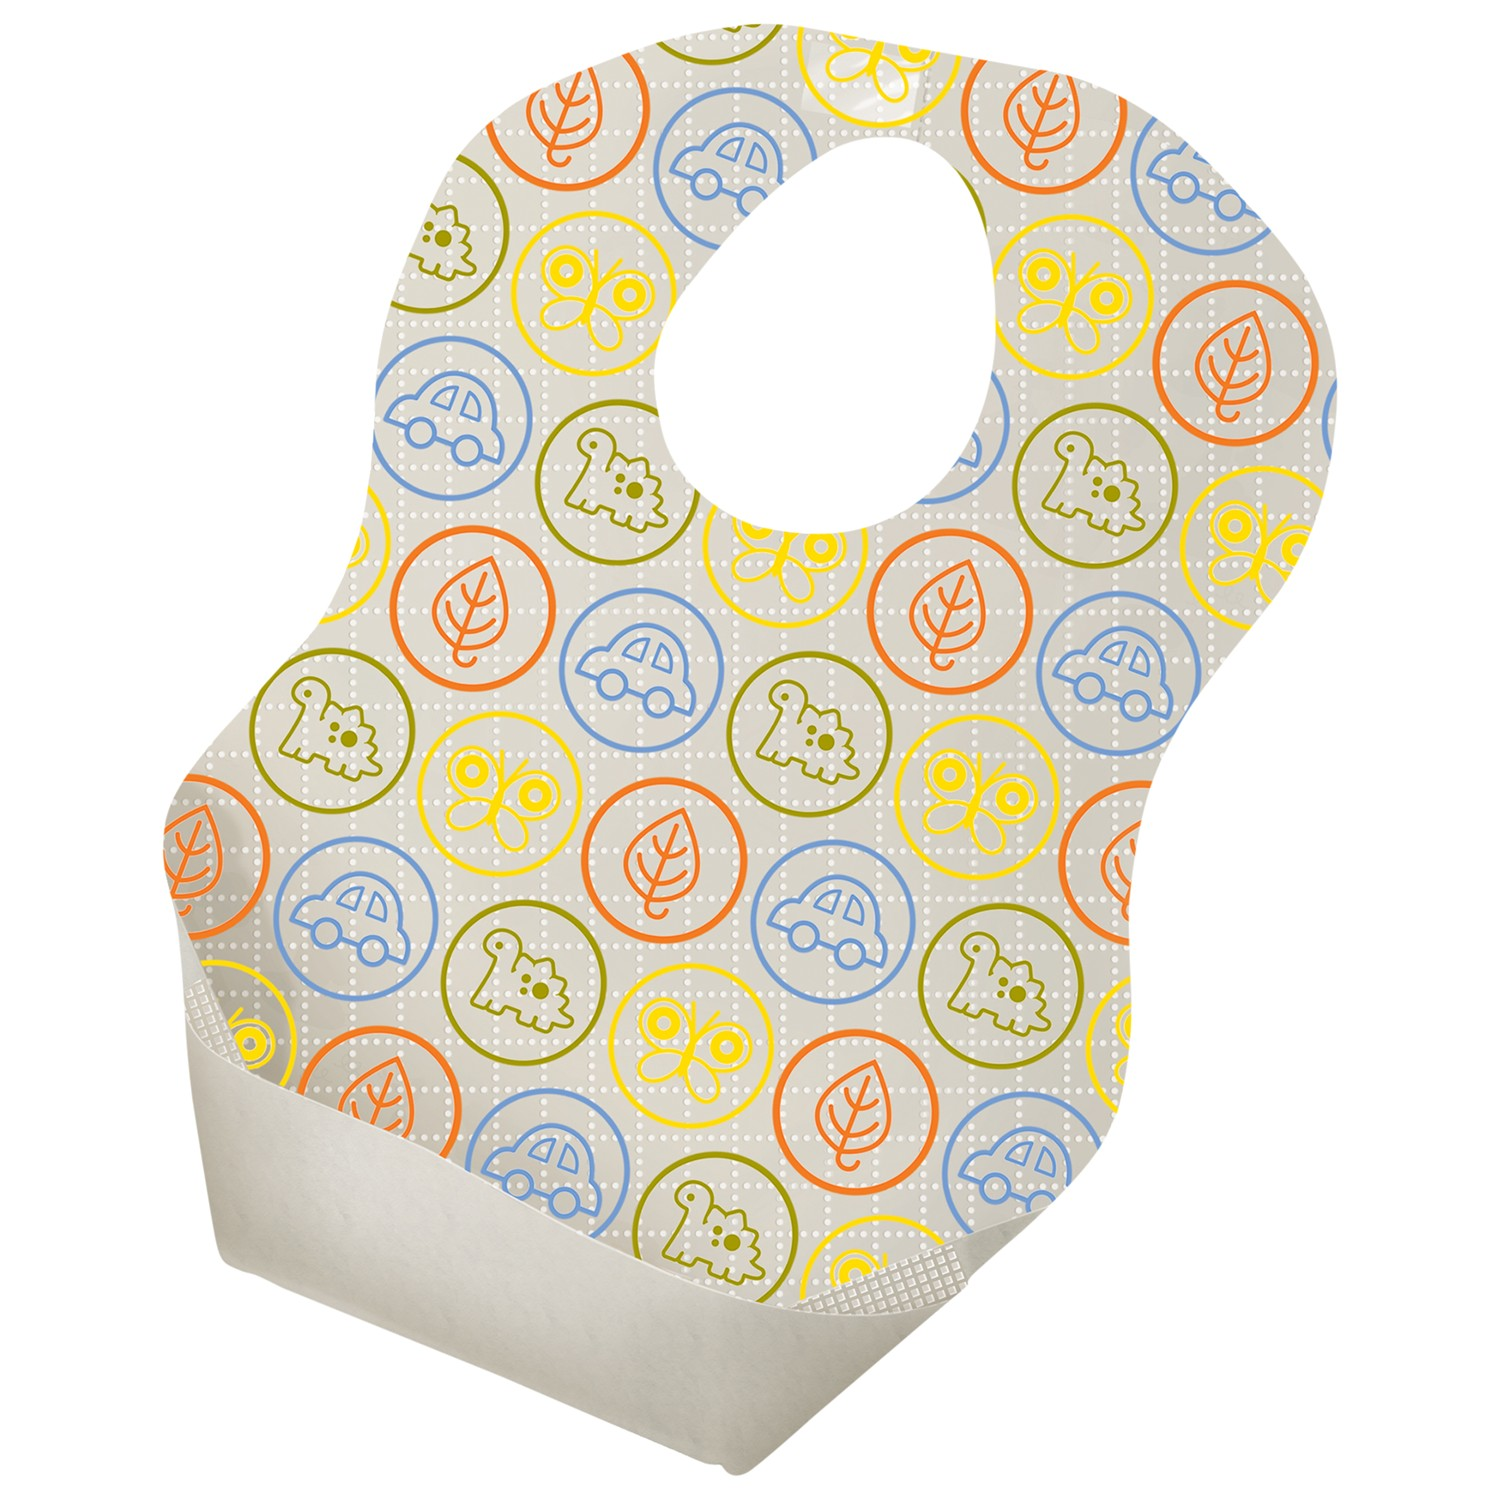 Tommee Tippee Disposable Baby Bibs